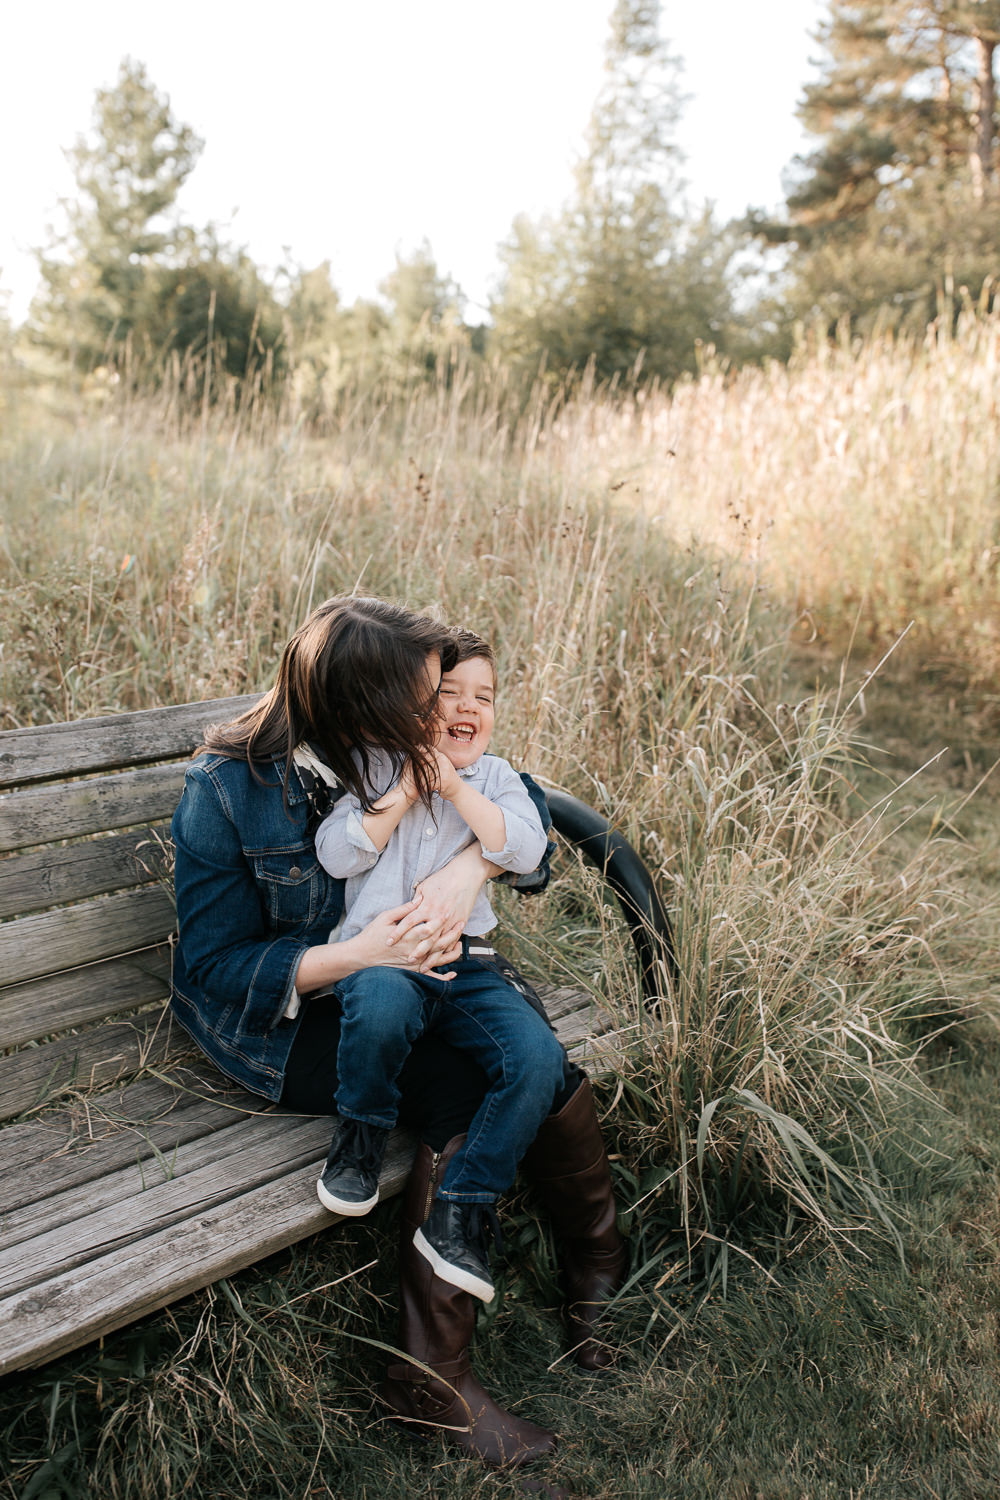 mother with dark brown hair sitting on park bench surrounded by tall grasses with 4 year old boy sitting in her lap, laughing as mom kisses son's face - York Region Lifestyle Photography